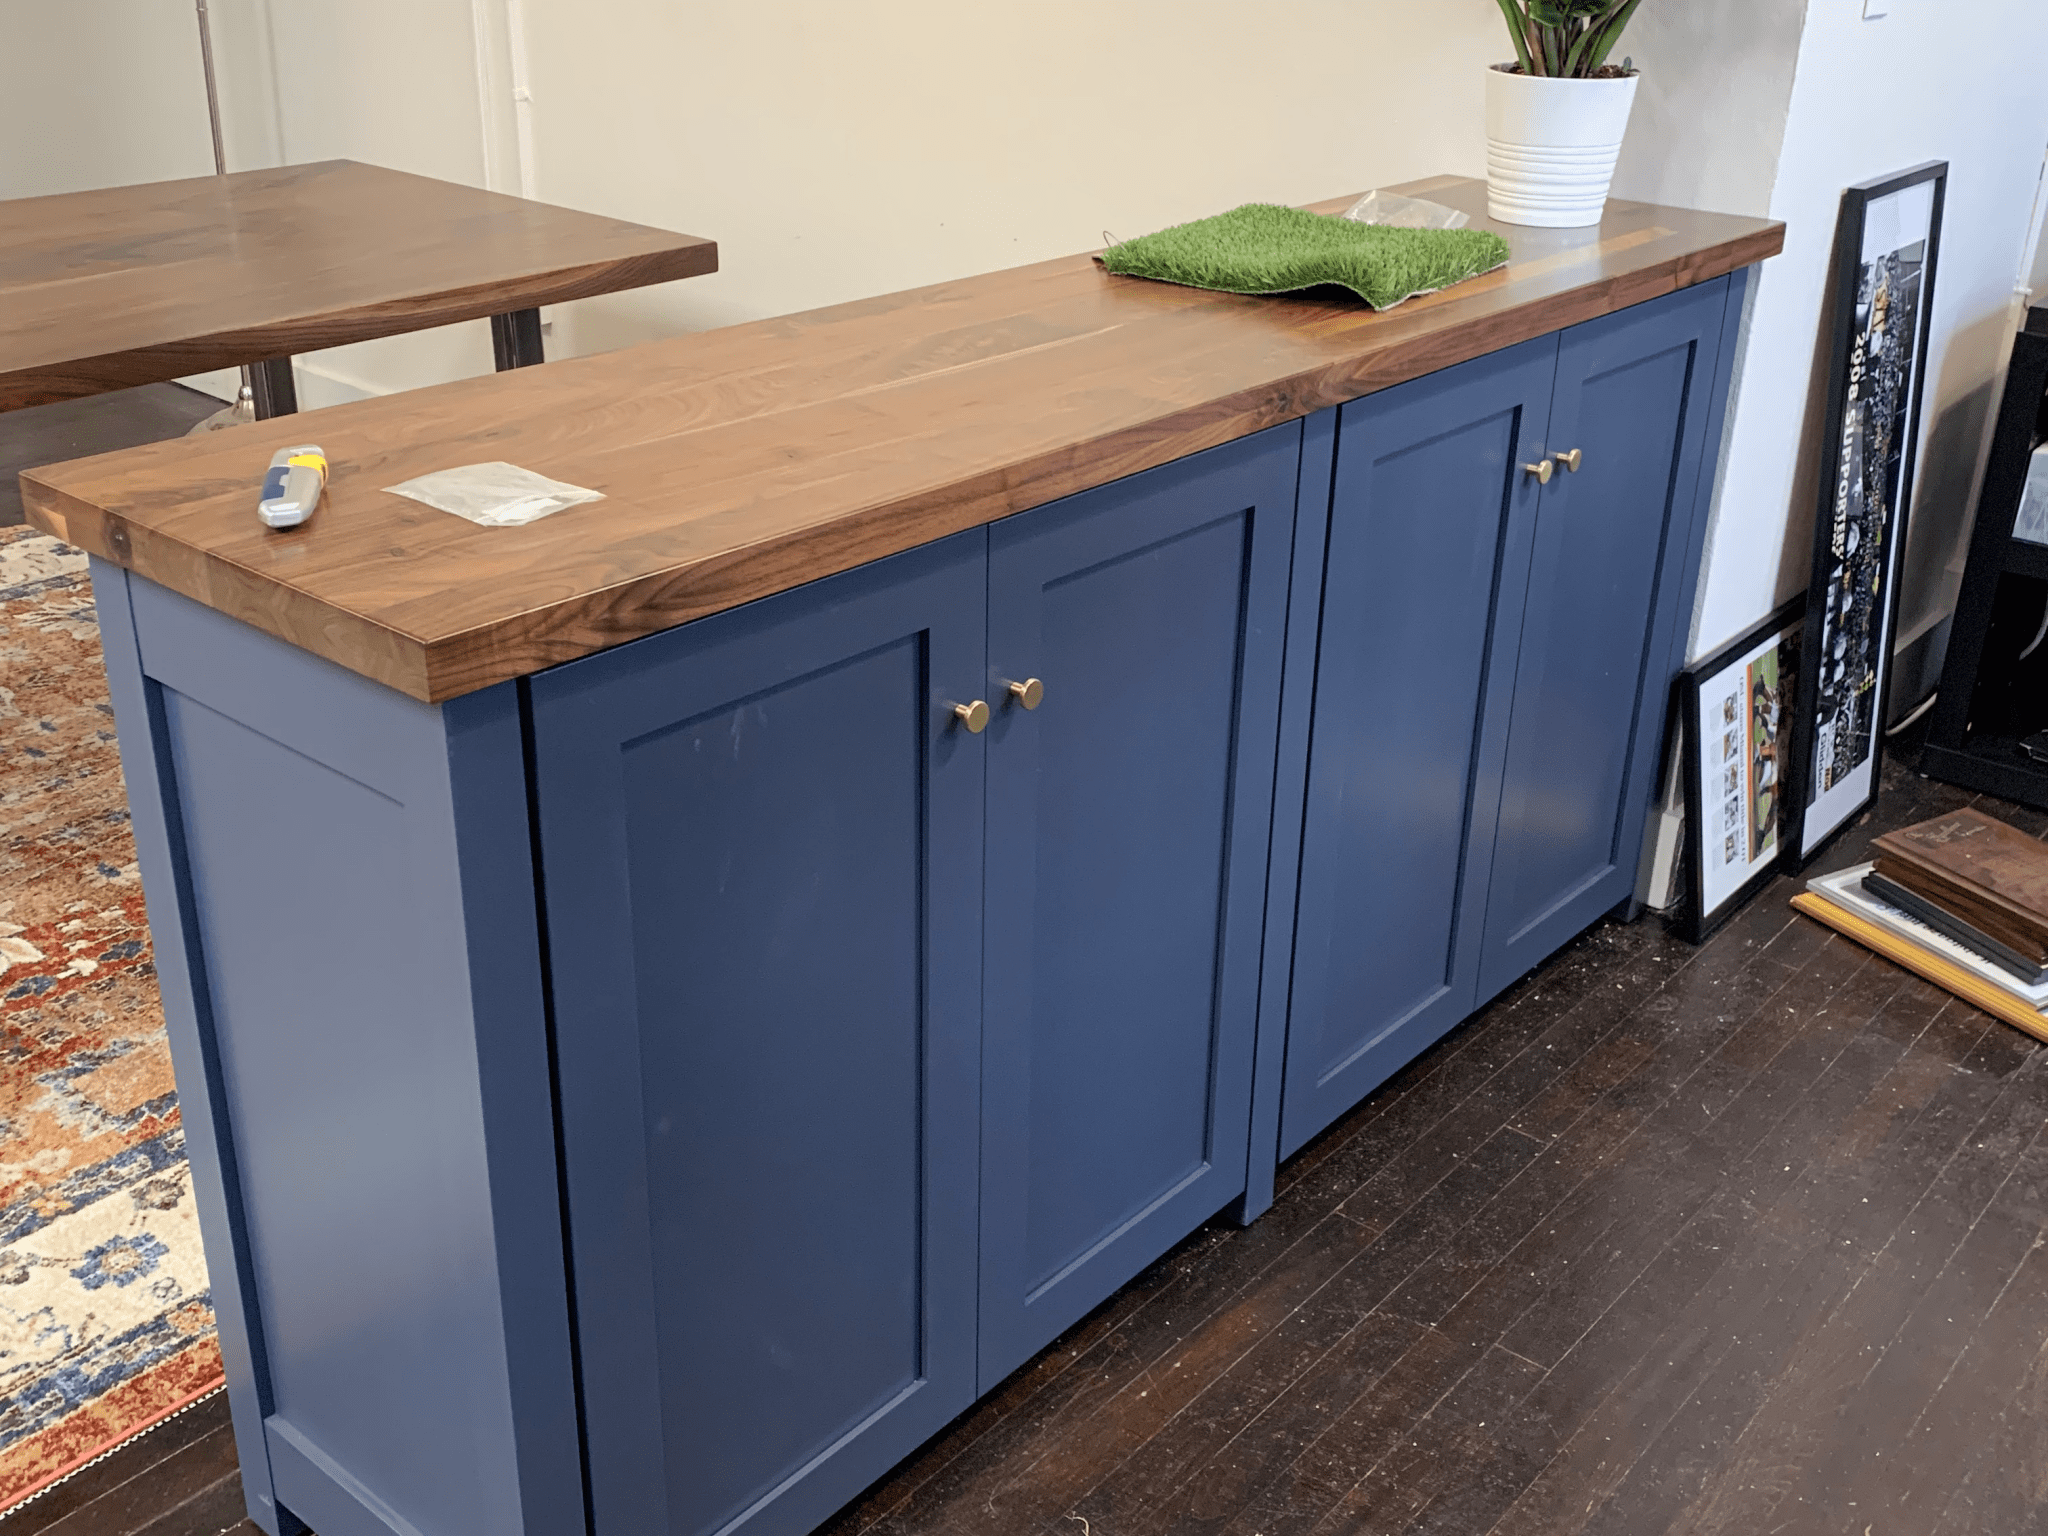 navy blue living room cabinets with wooden countertop